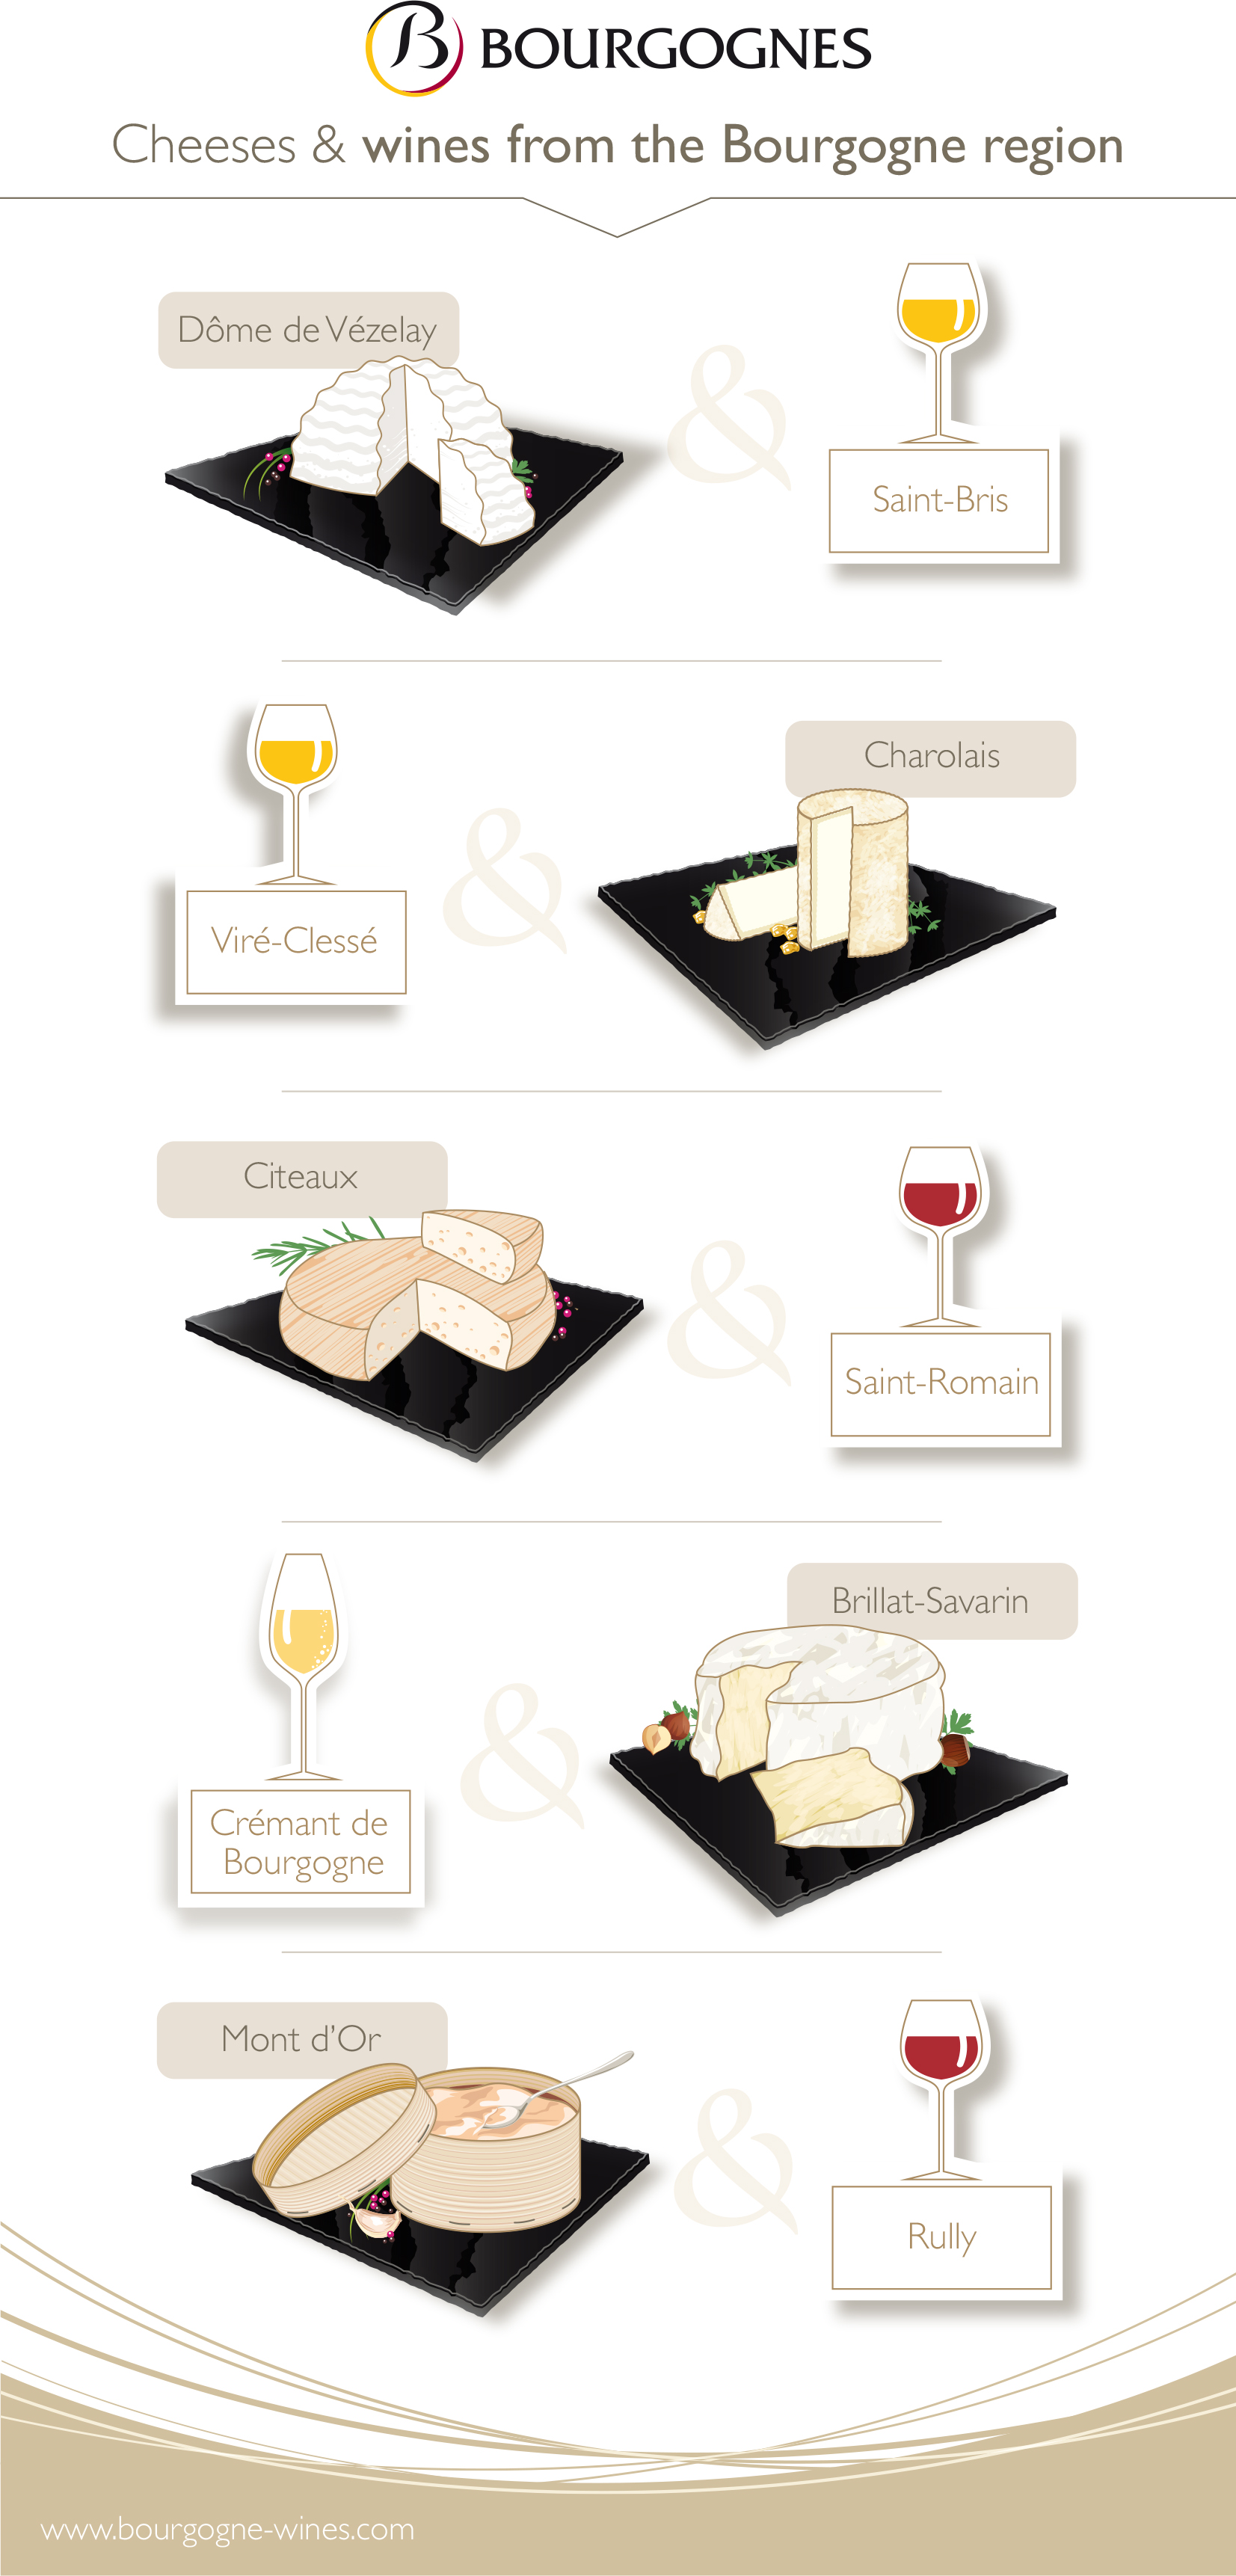 Regional cheeses and Bourgogne wines